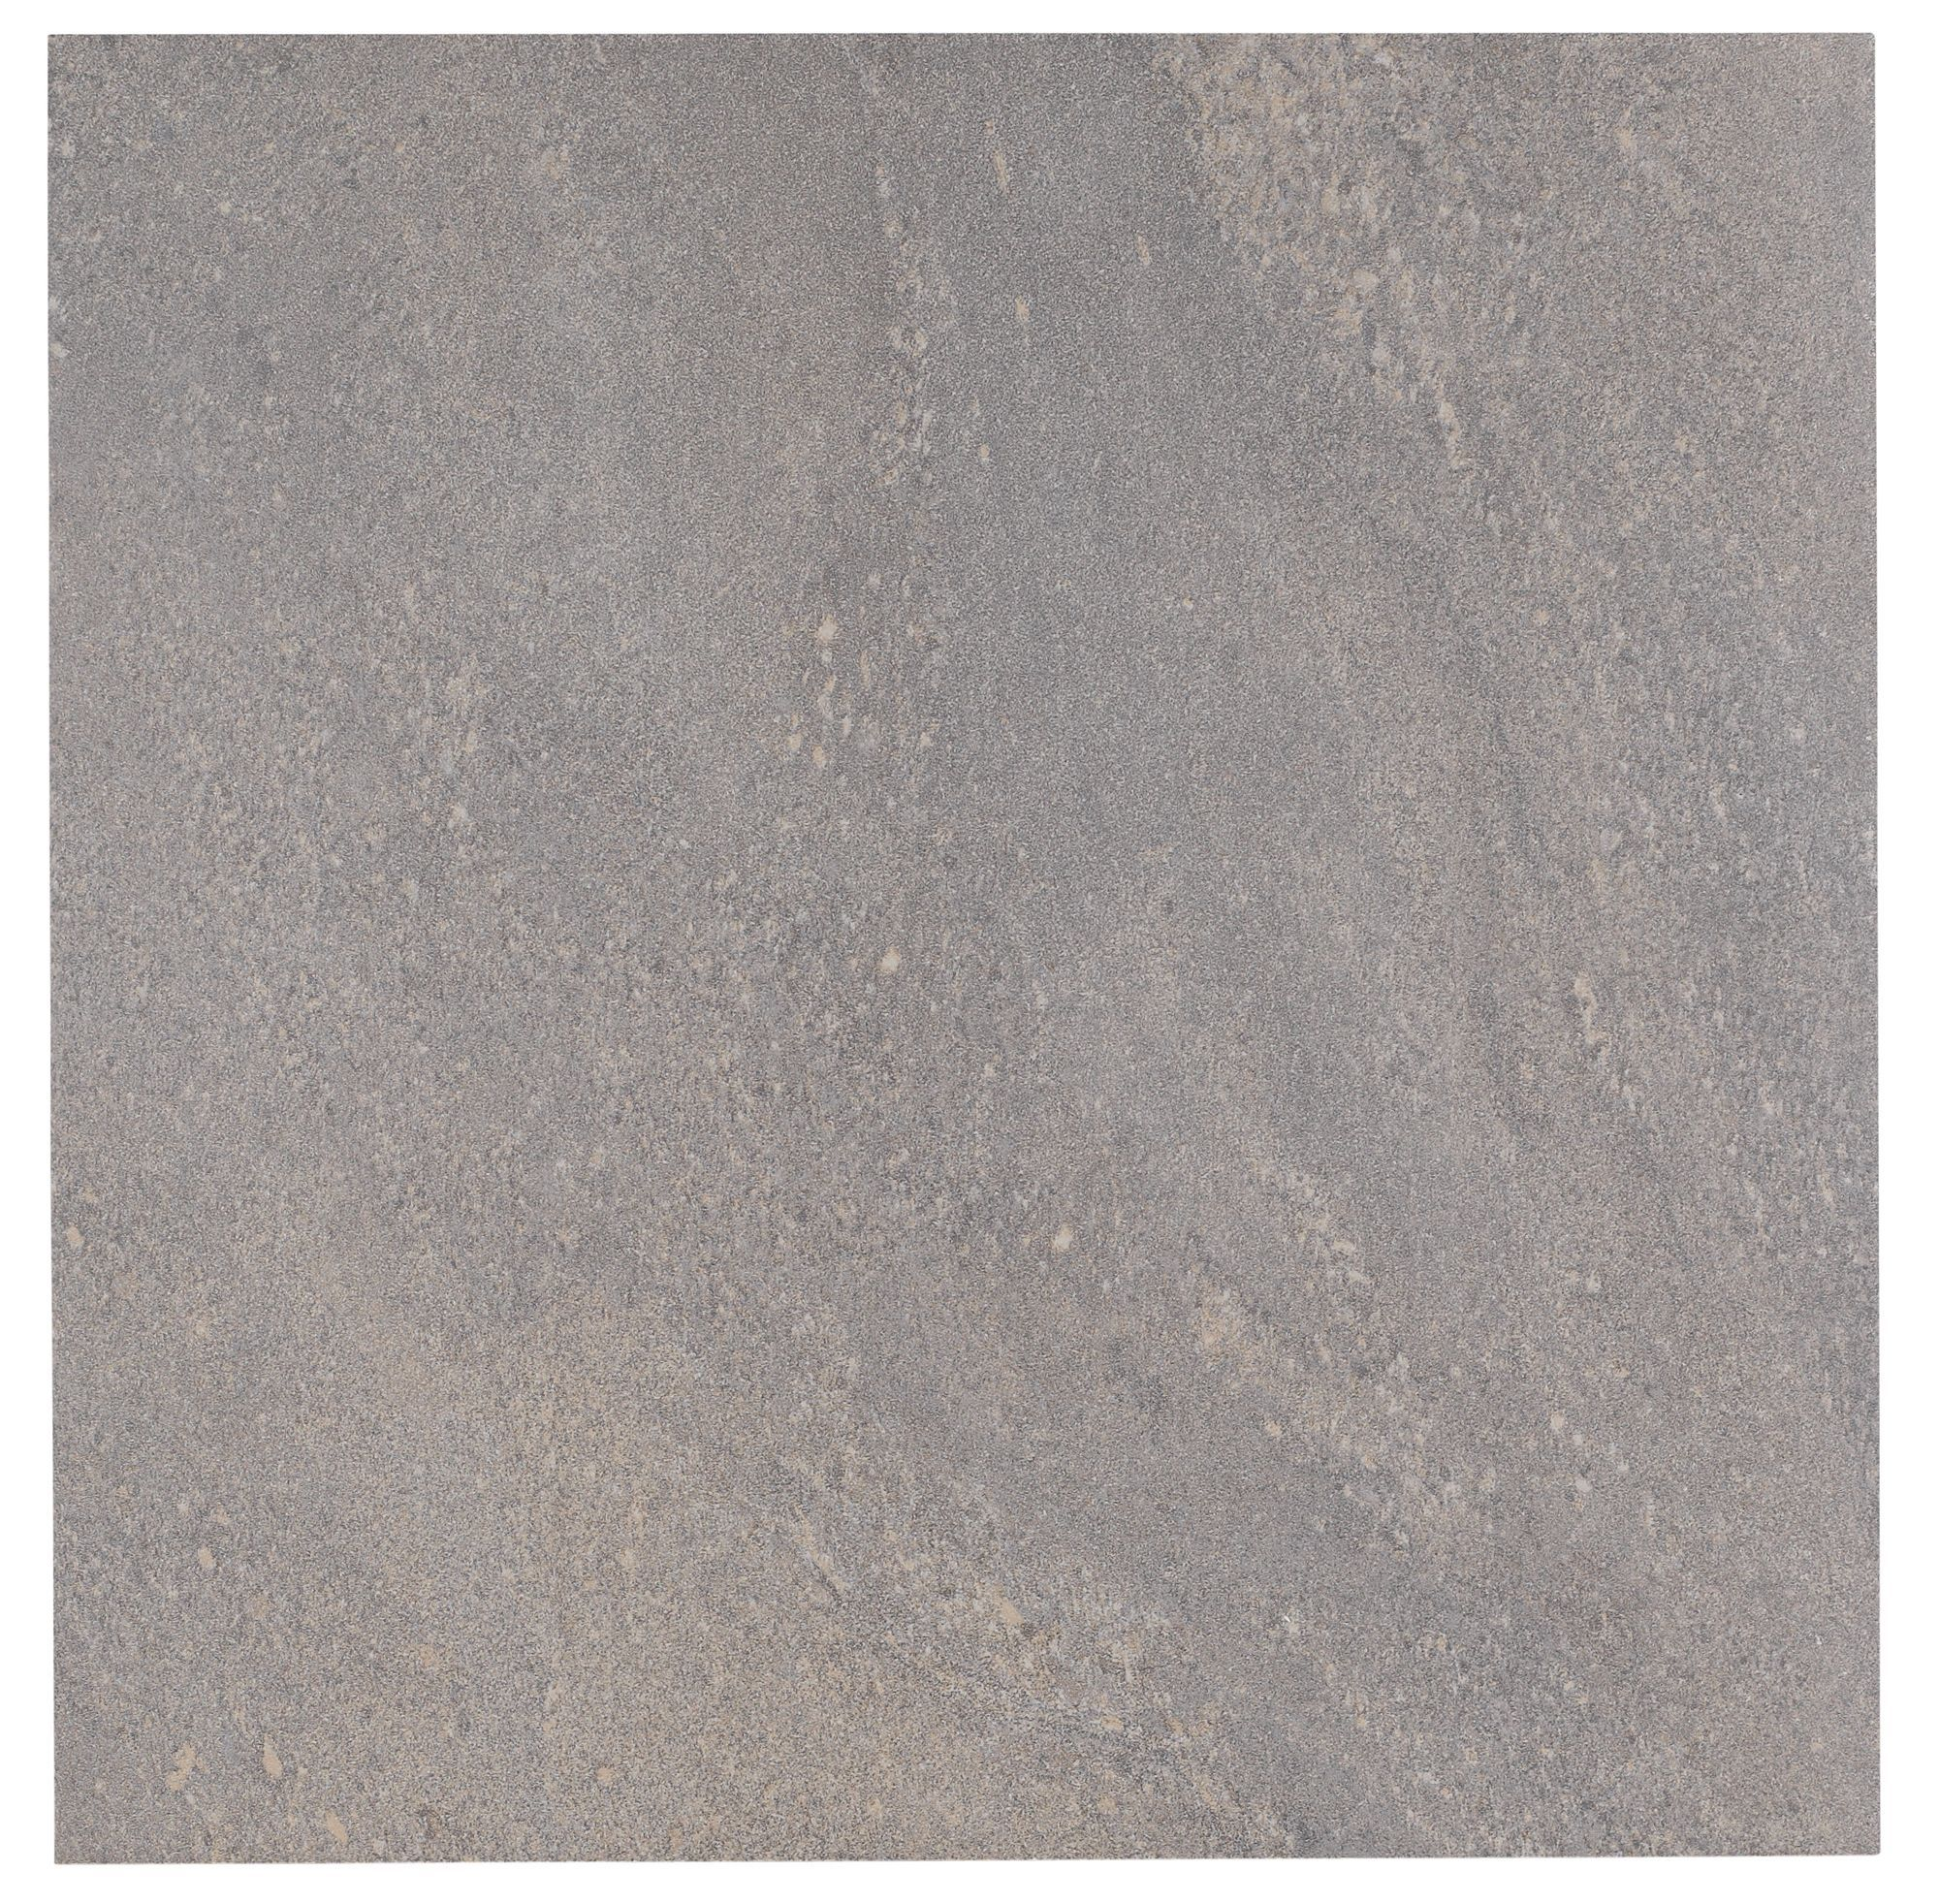 Antayla Grey Stone Effect Stone Porcelain Floor Tile Pack